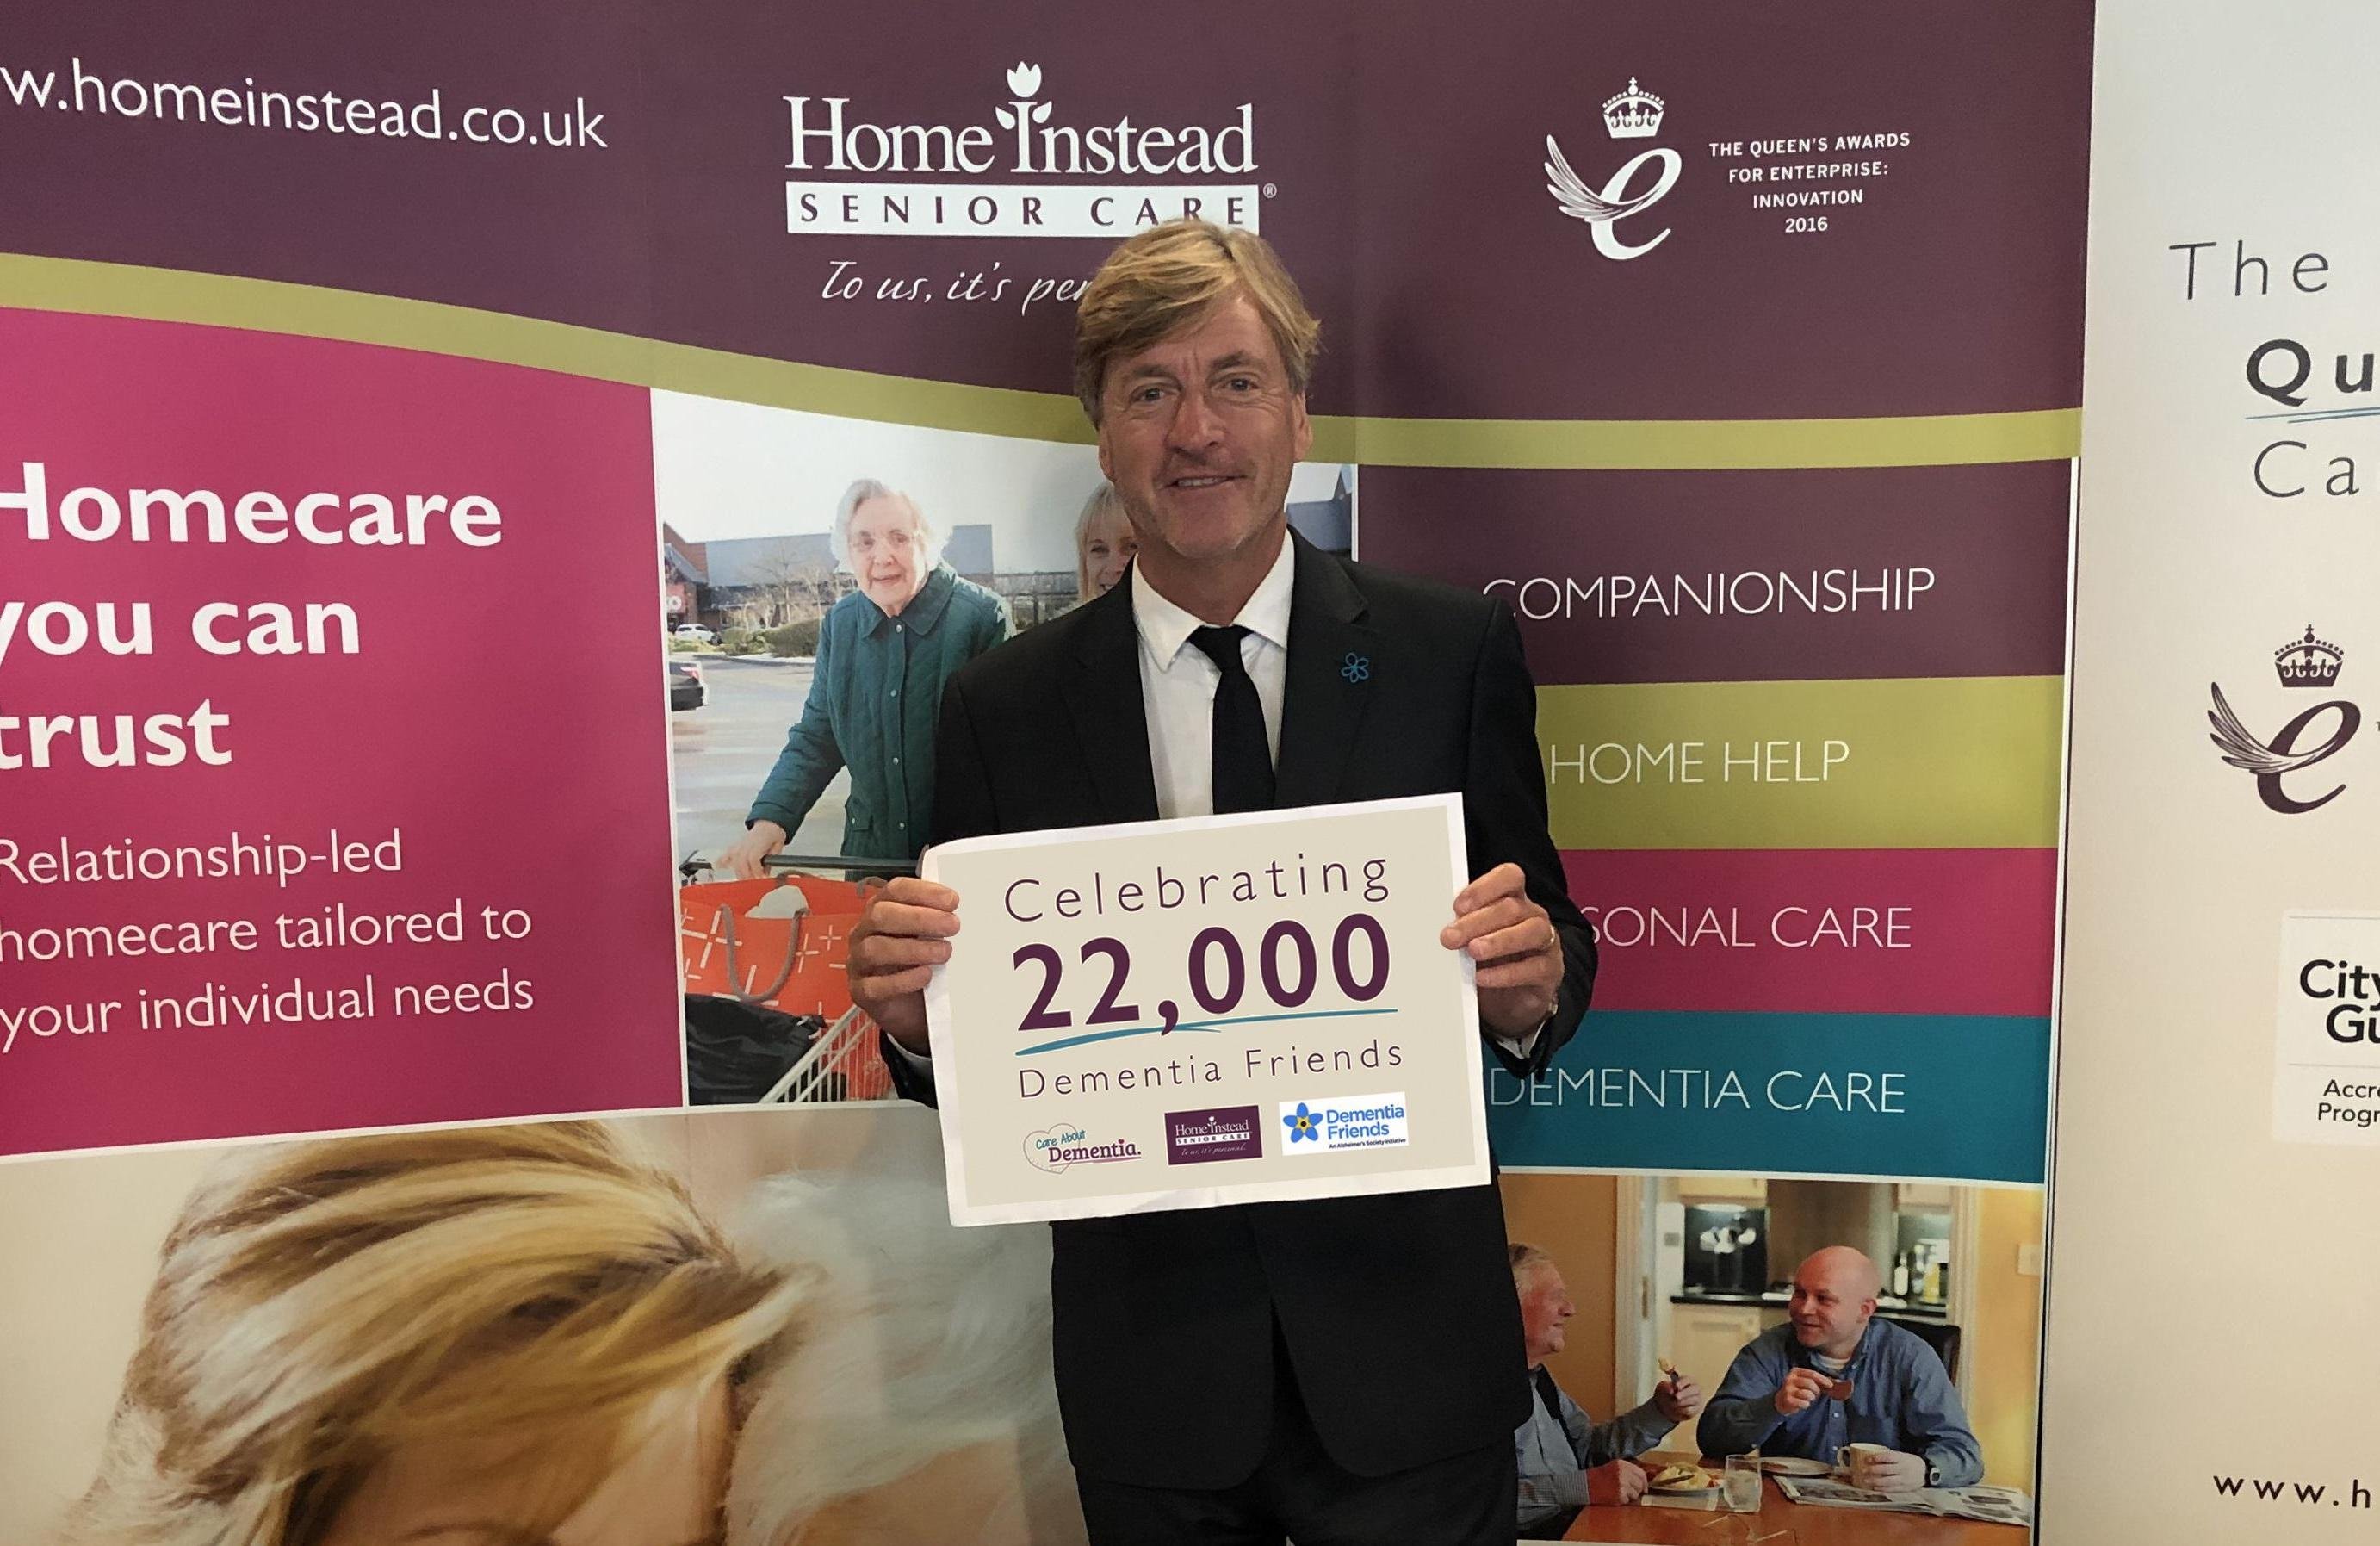 Richard Madeley with Dementia Campaign